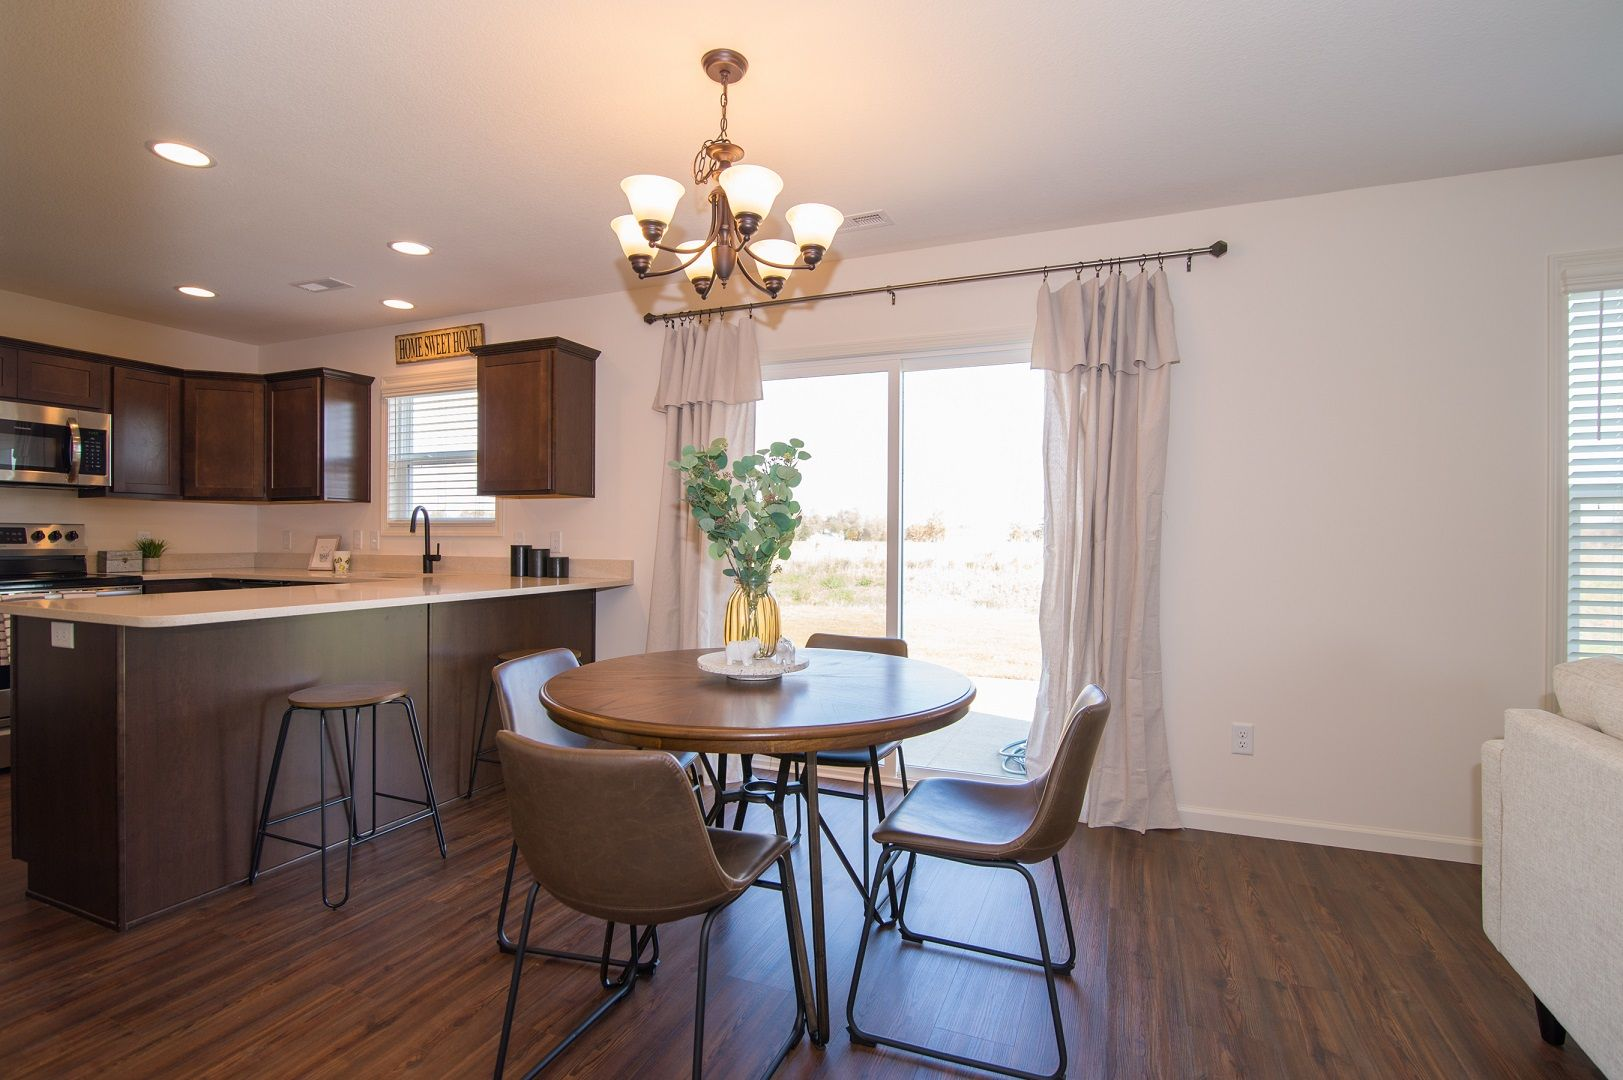 Kitchen featured in the Dover By D.R. Horton in Fort Wayne, IN